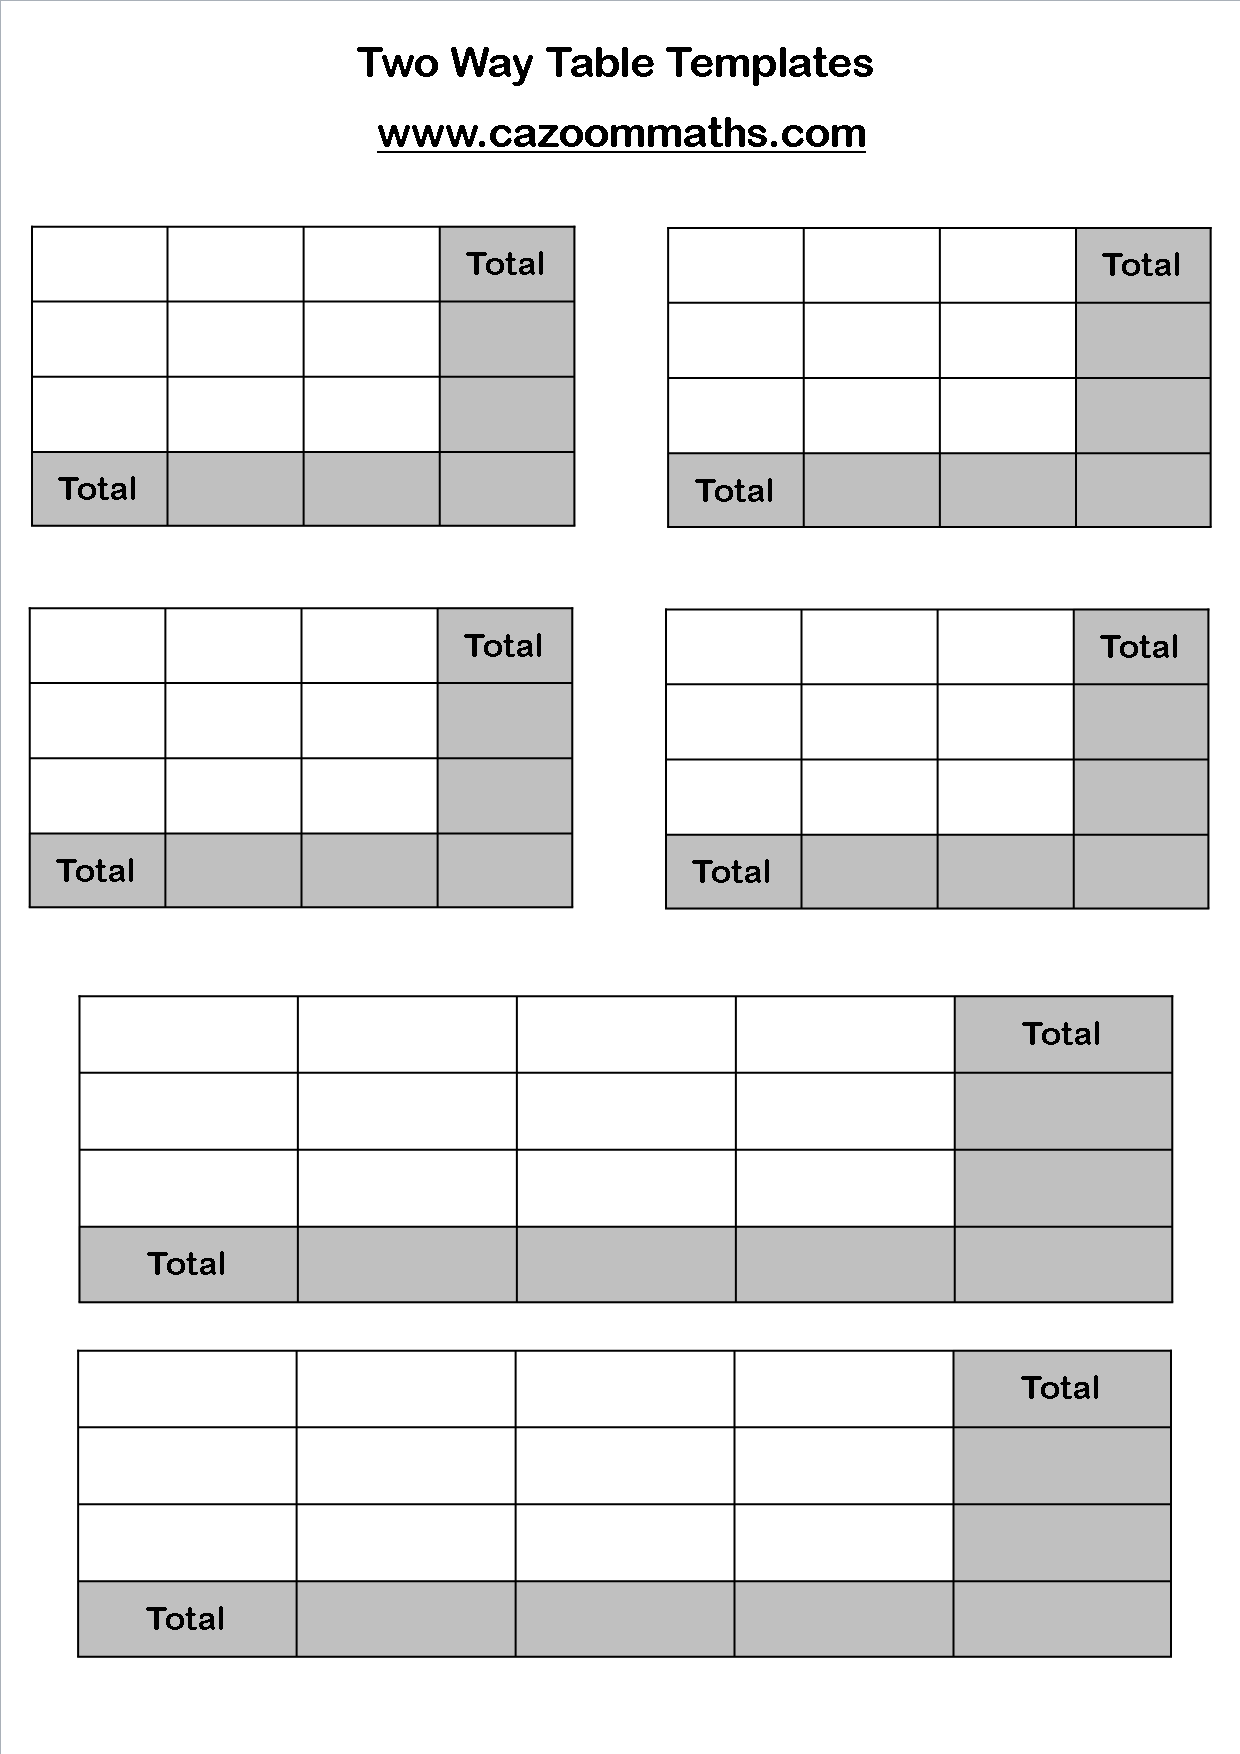 Two Way Tables And Pictograms Cazoom Maths Worksheets